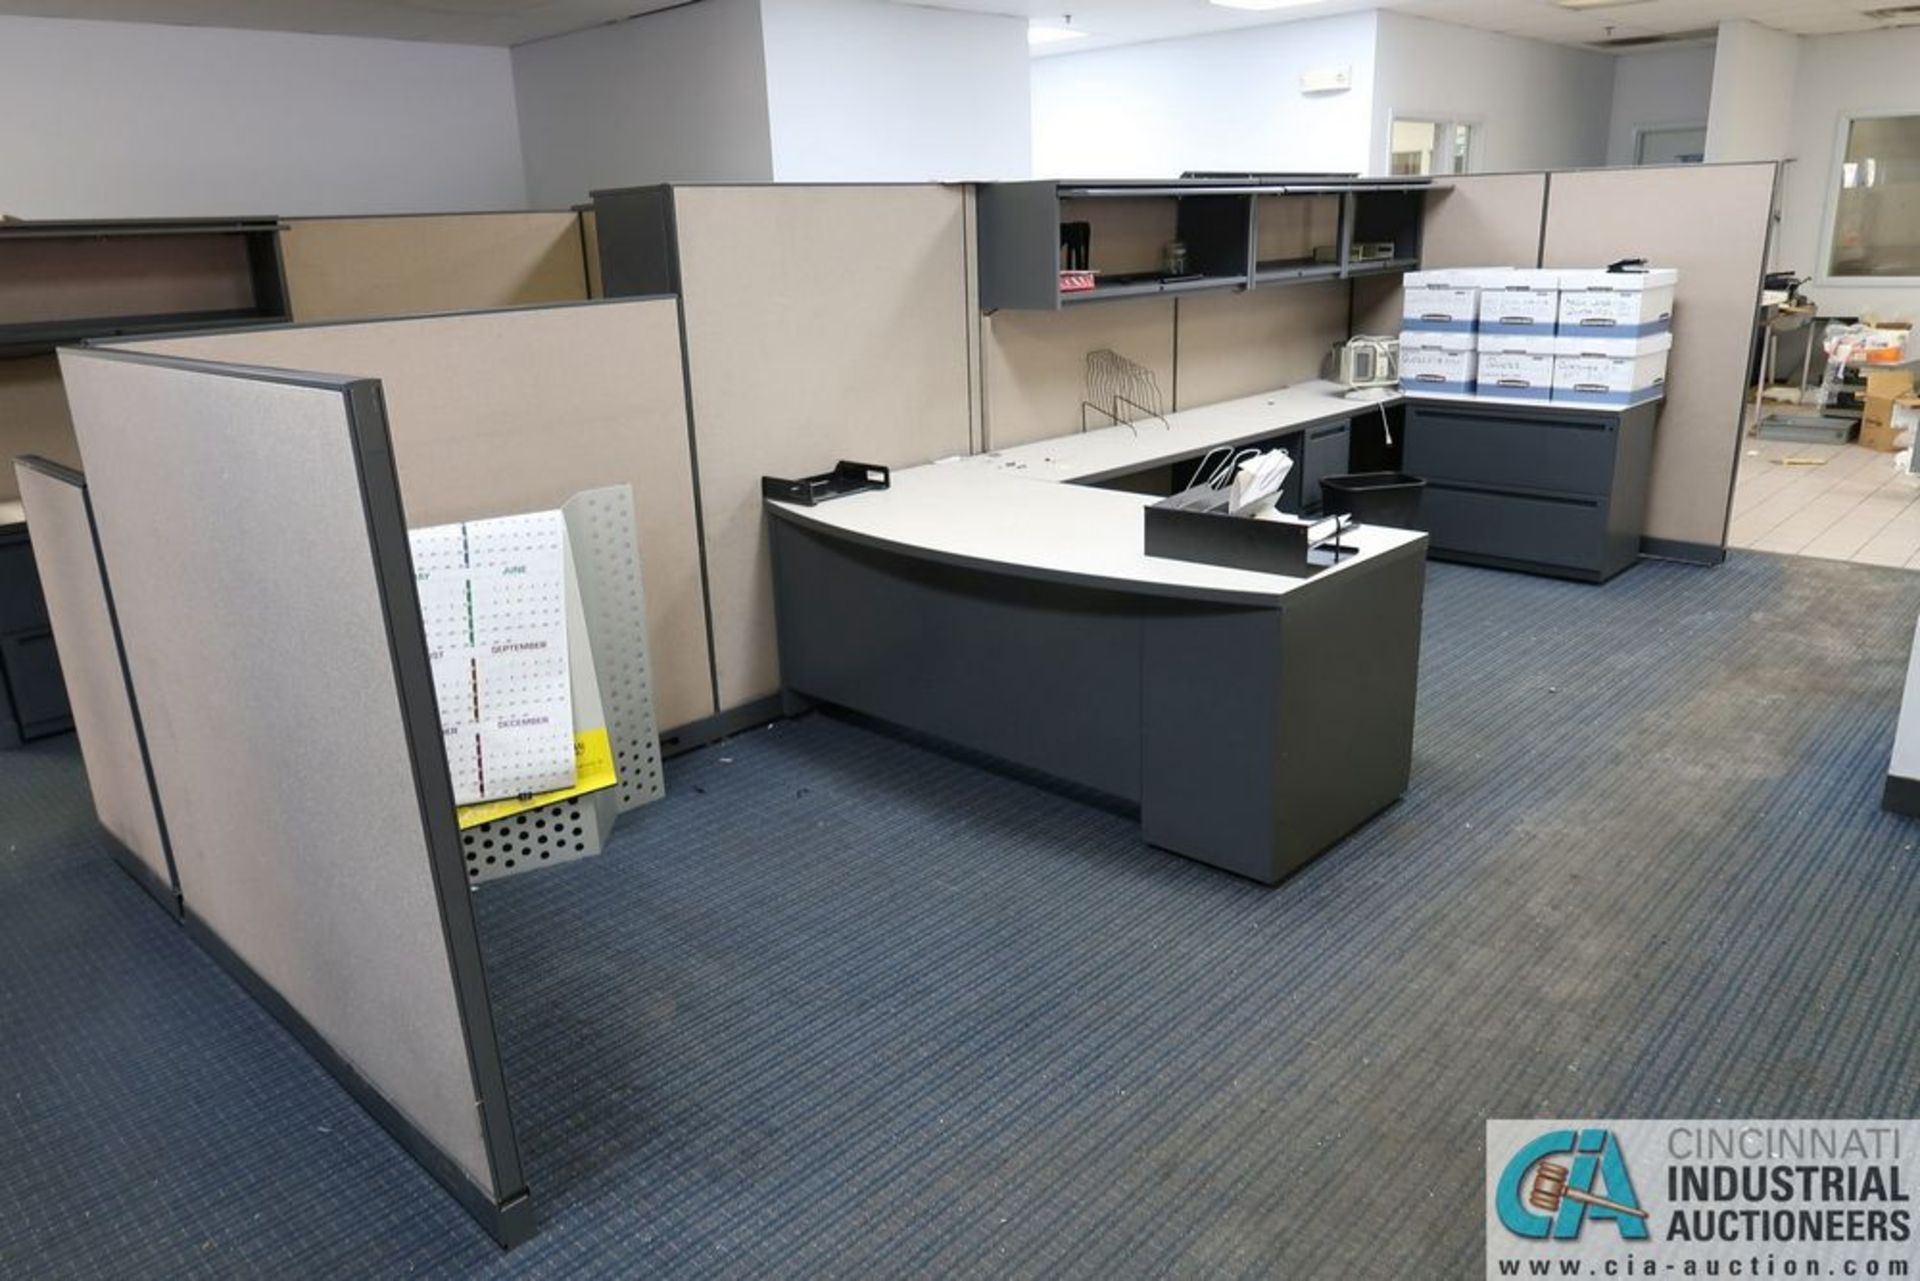 "(LOT) OFFICE CUBICLES, (2) 72"" X 72"", (2) 100"" X 92"", (2) 112"" X 96"", (1) 216"" X 72"" - Image 4 of 10"